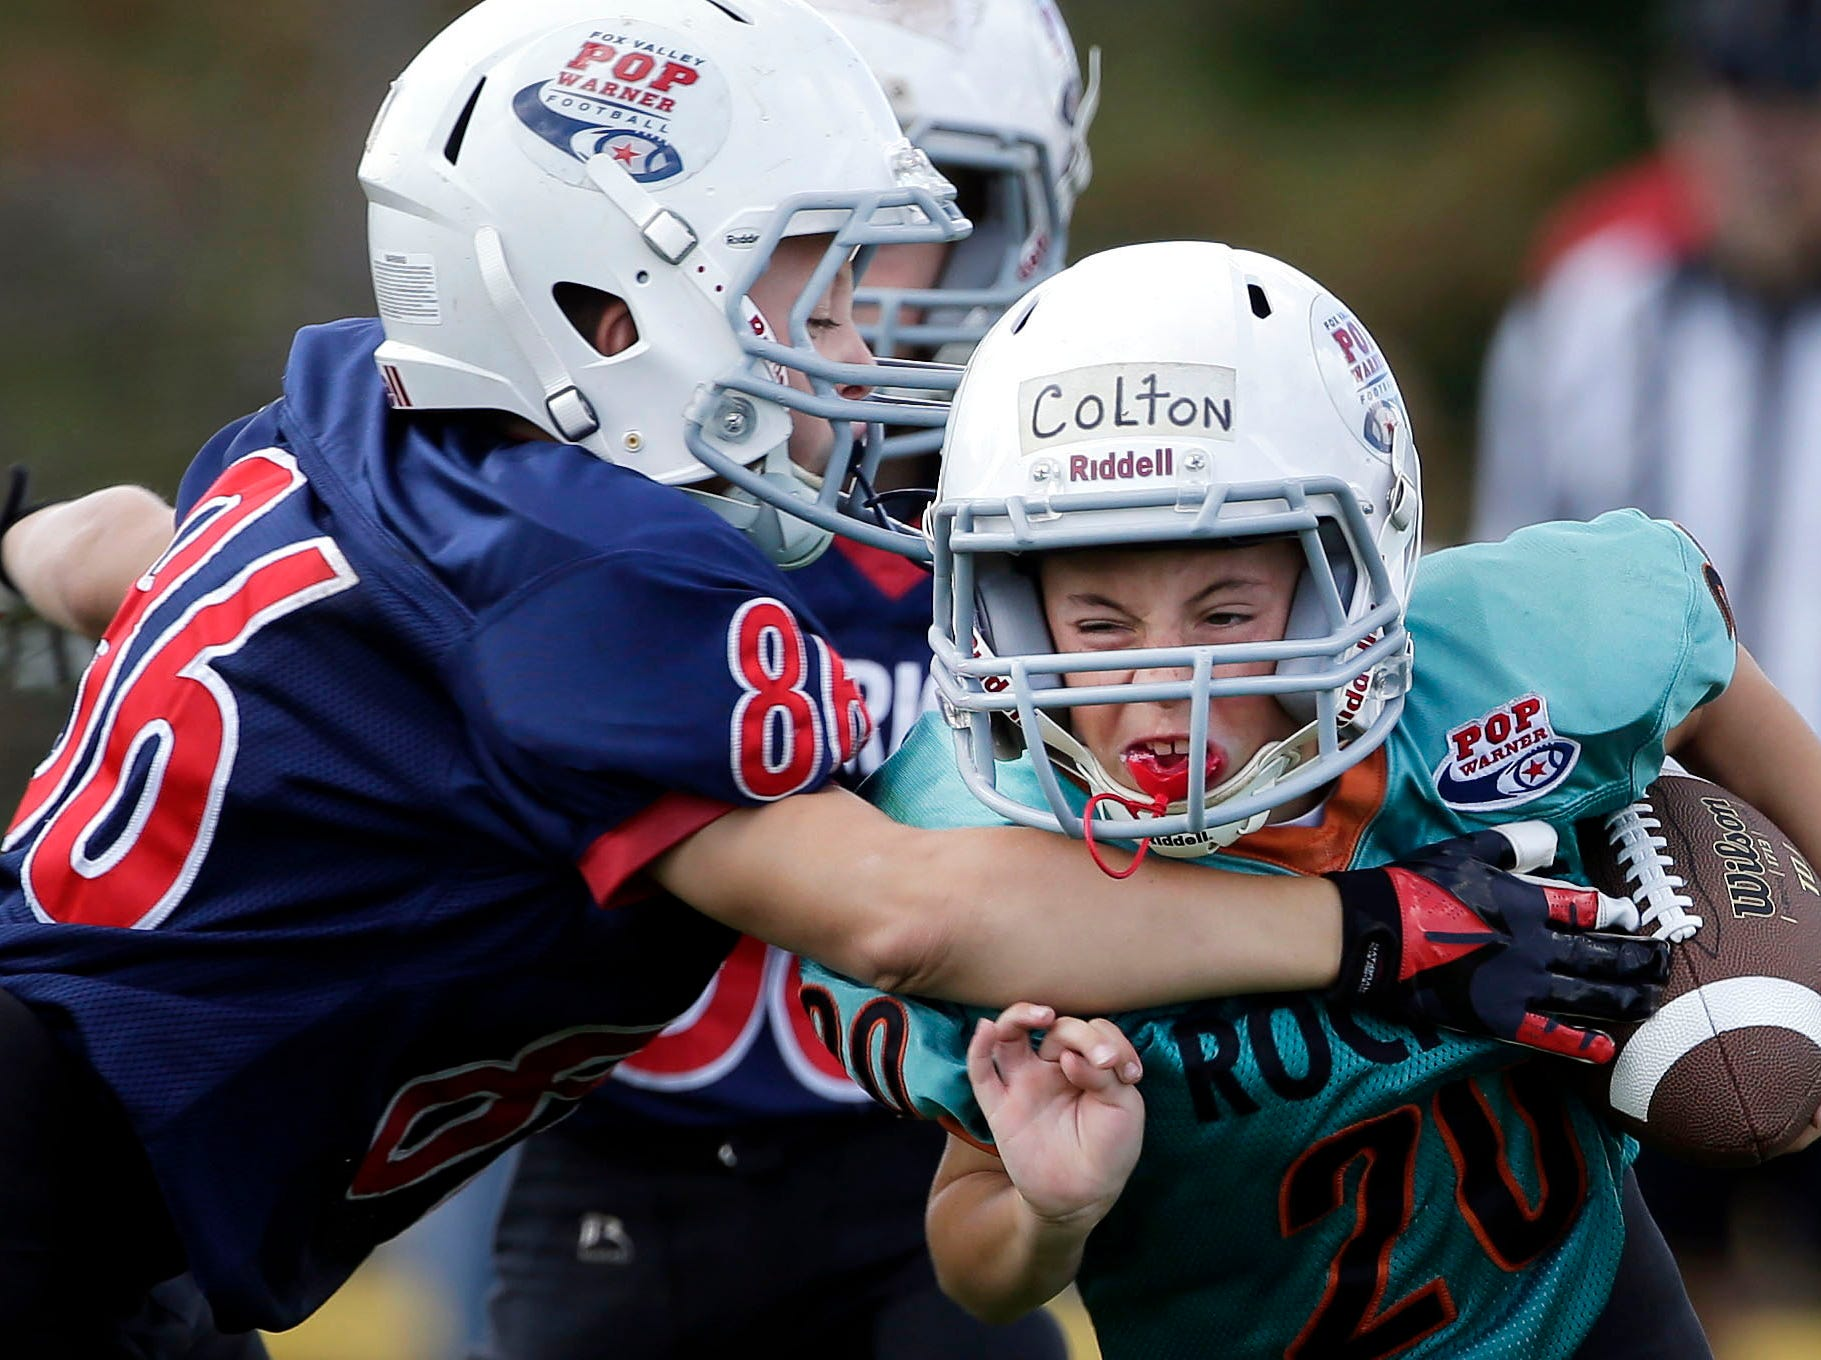 Colton Kreger of the Rockets carries the ball against the Patriots in the Junior Pee Wee Division as Fox Valley Pop Warner Football opens the season Saturday, September 8, 2018, at Plamann Park in Grand Chute, Wis.